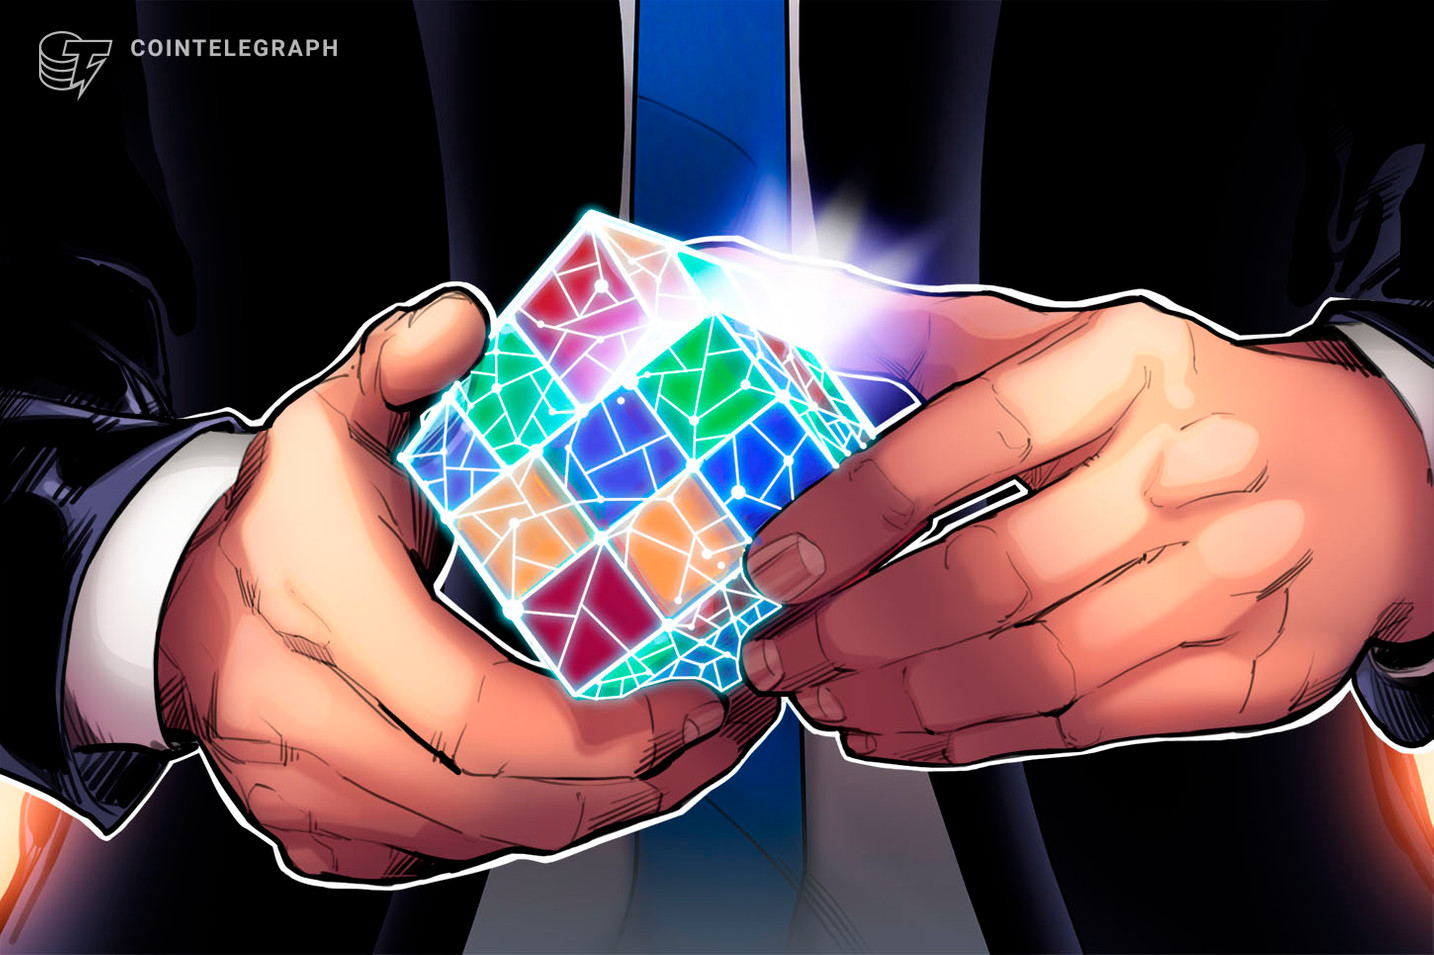 Immunity Passports May Be Blockchain's Killer App, Says Overstock CEO